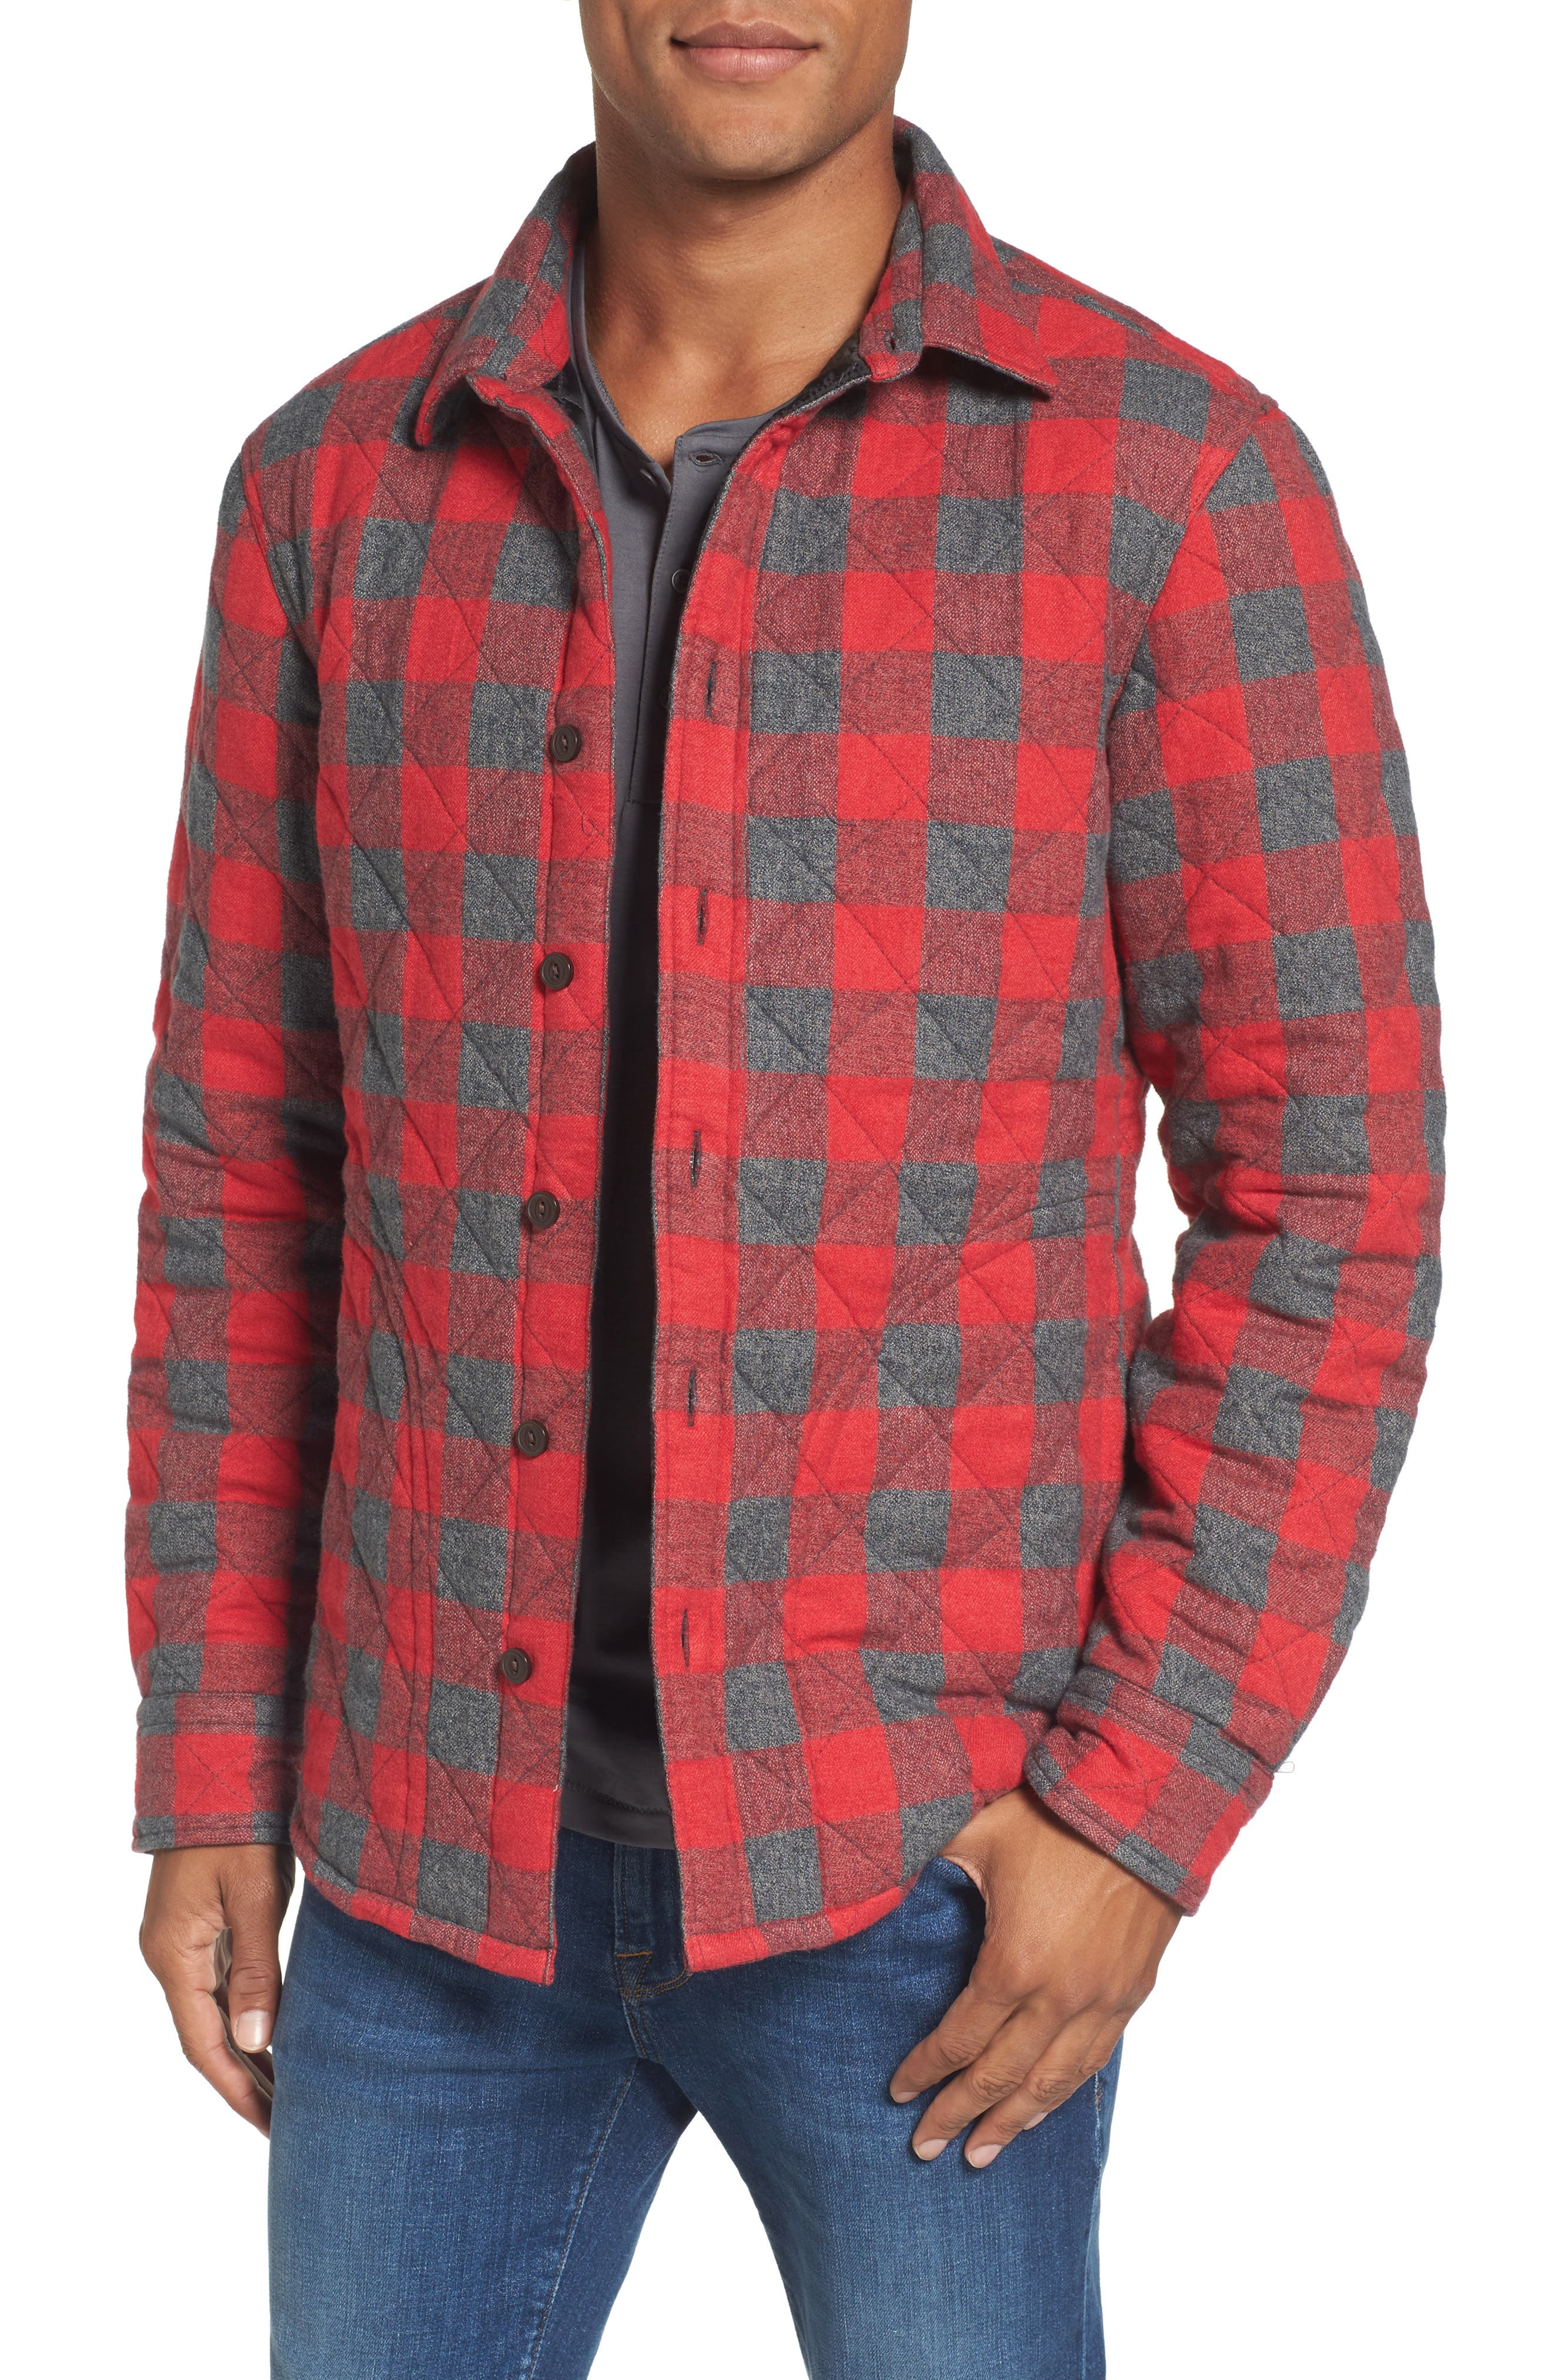 Alternate Image 1 Selected - Nordstrom Men's Shop Quilted Shirt Jacket